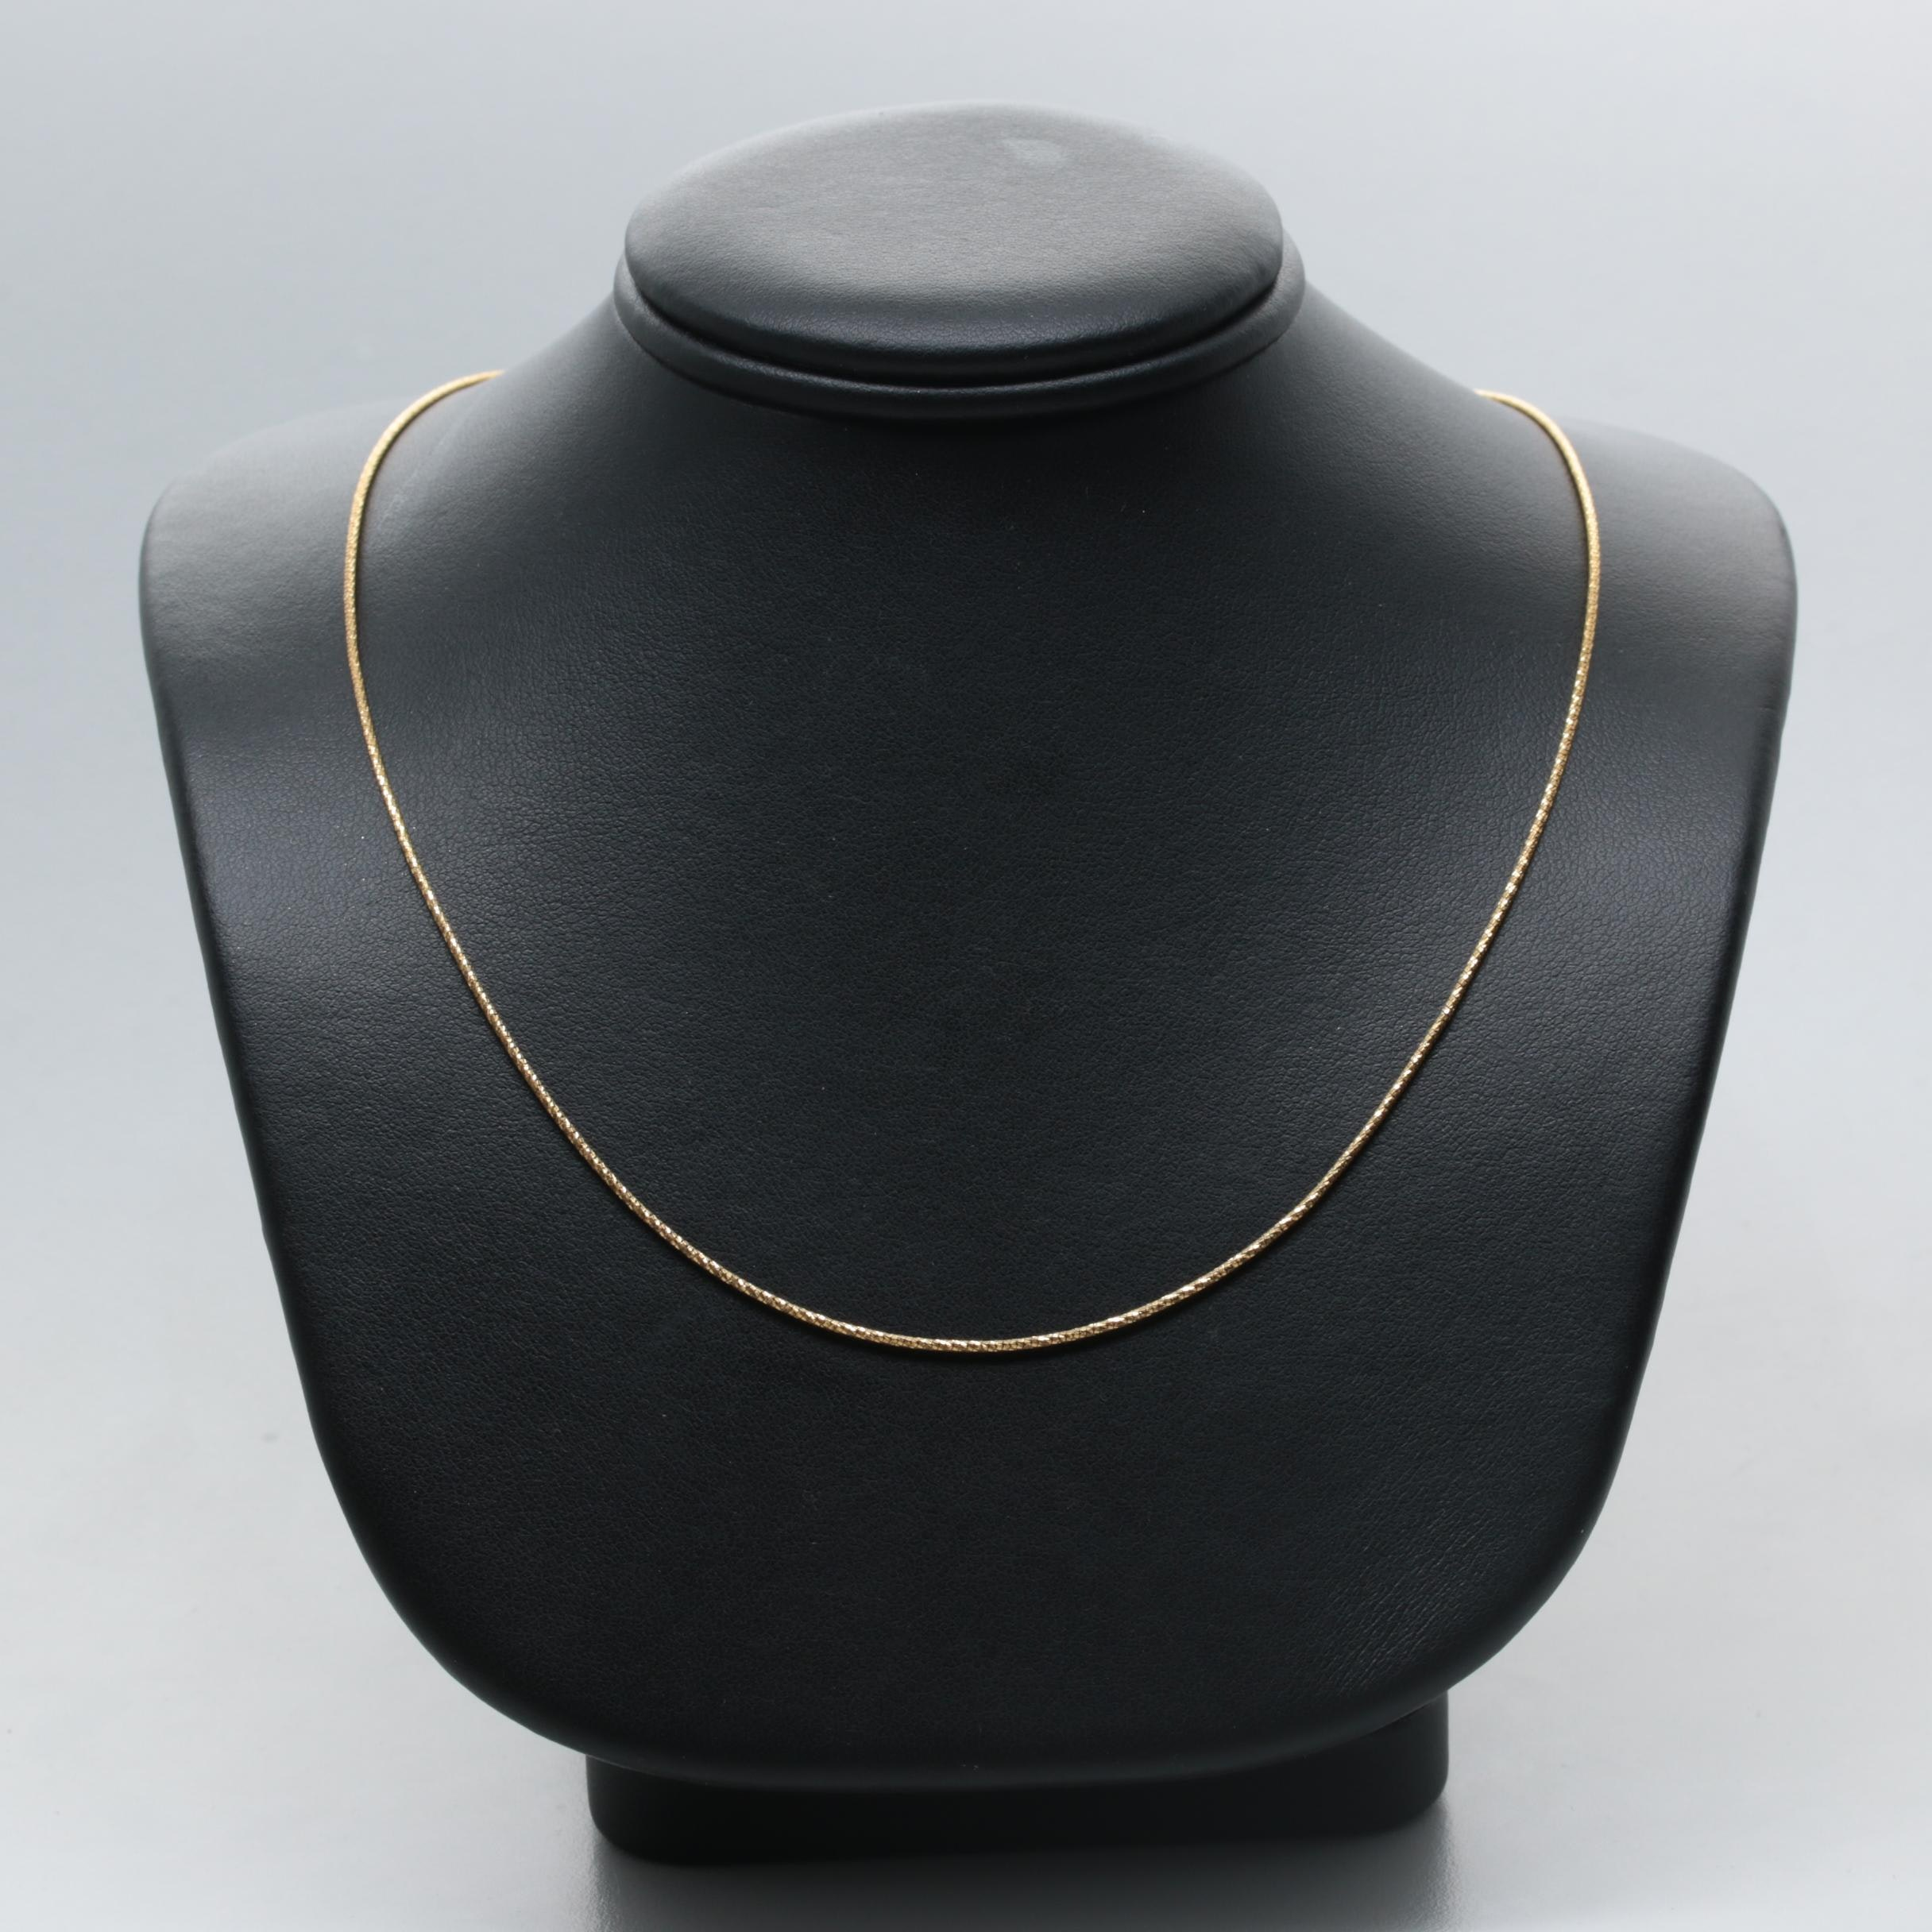 Milor 14K Yellow Gold Chain Link Necklace